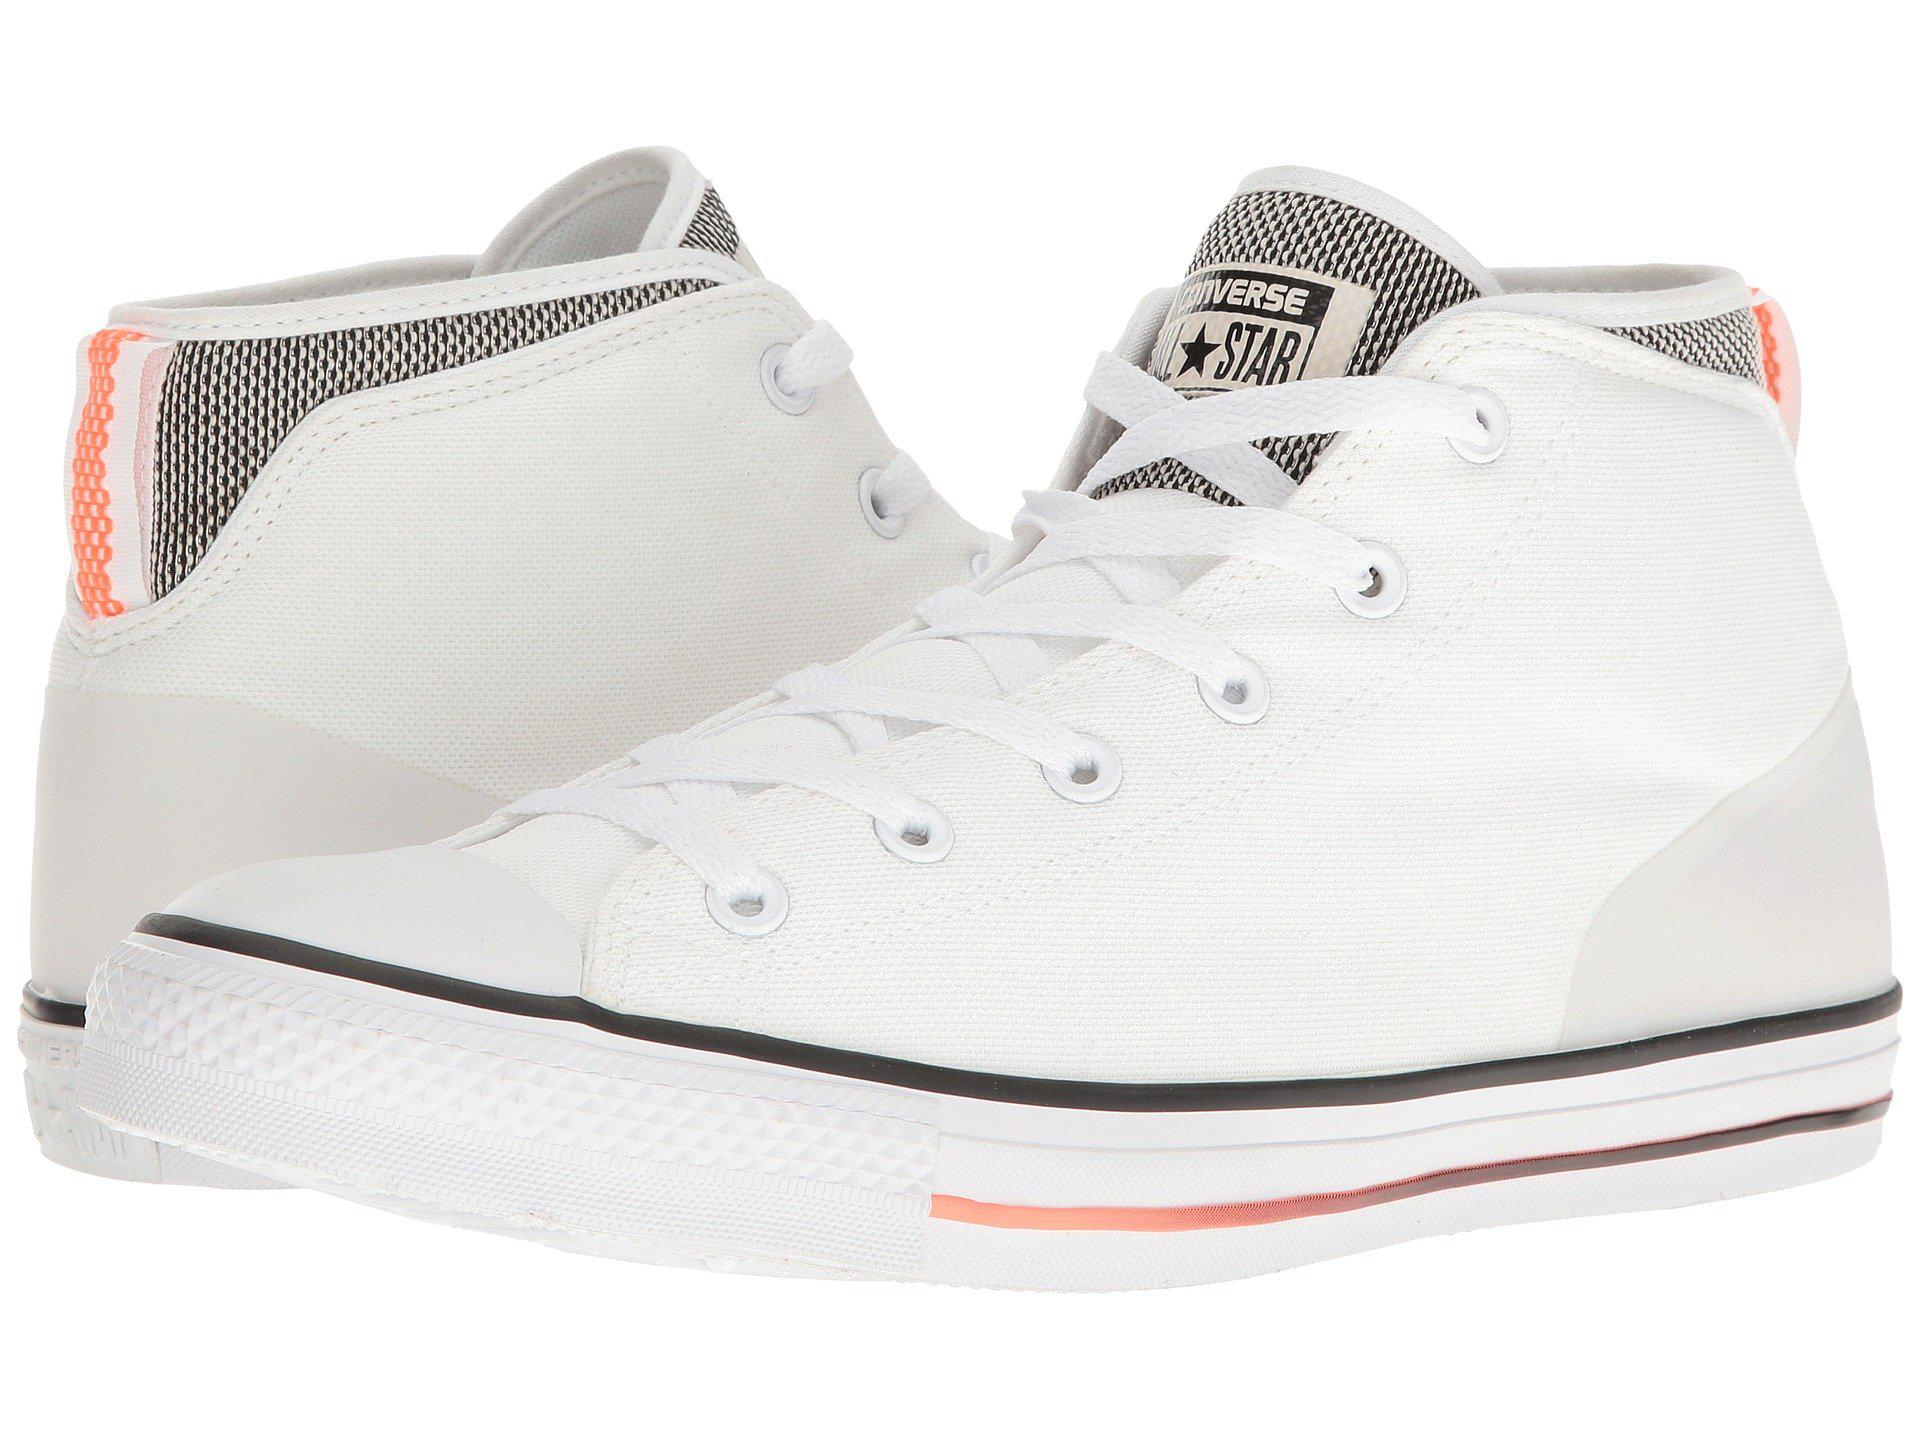 Lyst - Converse Chuck Taylor® All Star® Syde Street Summer Mid in ... 319f5619f